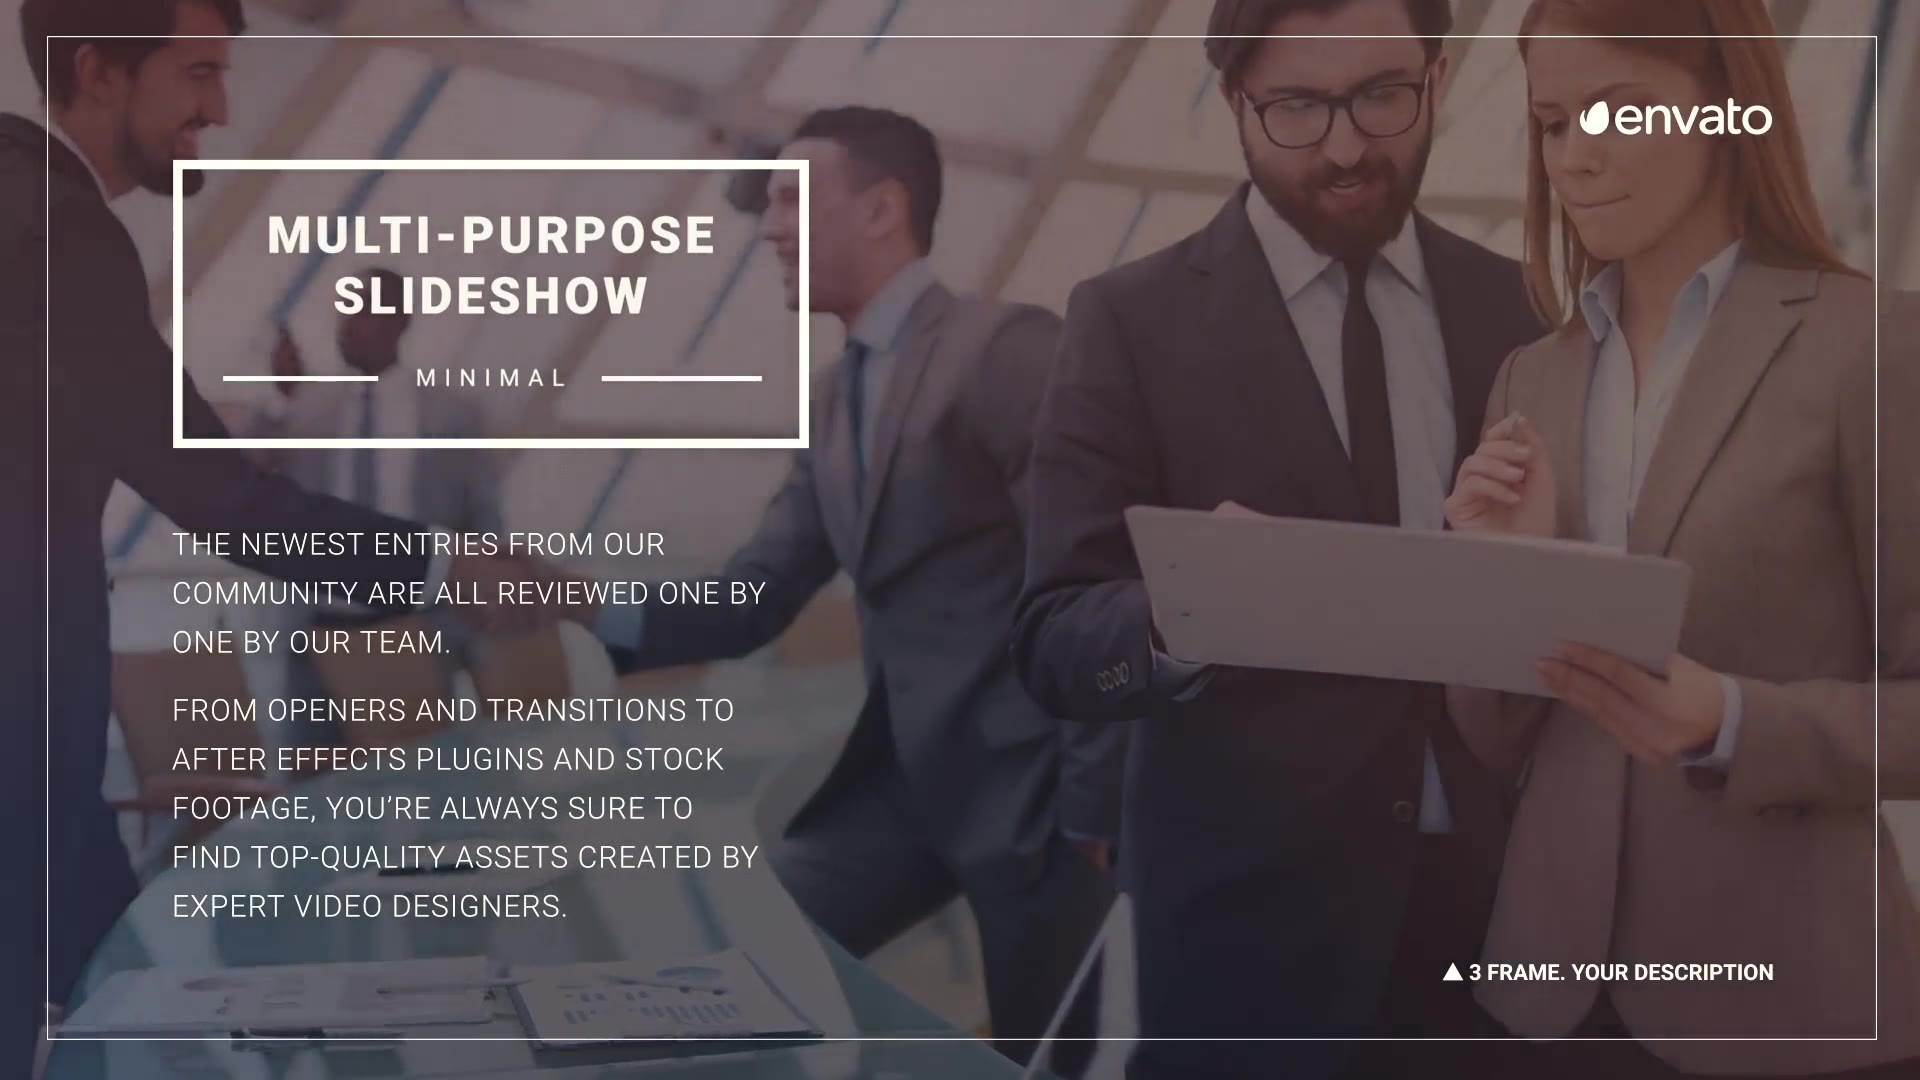 Clean Corporate Slides Videohive 25491904 Premiere Pro Image 4